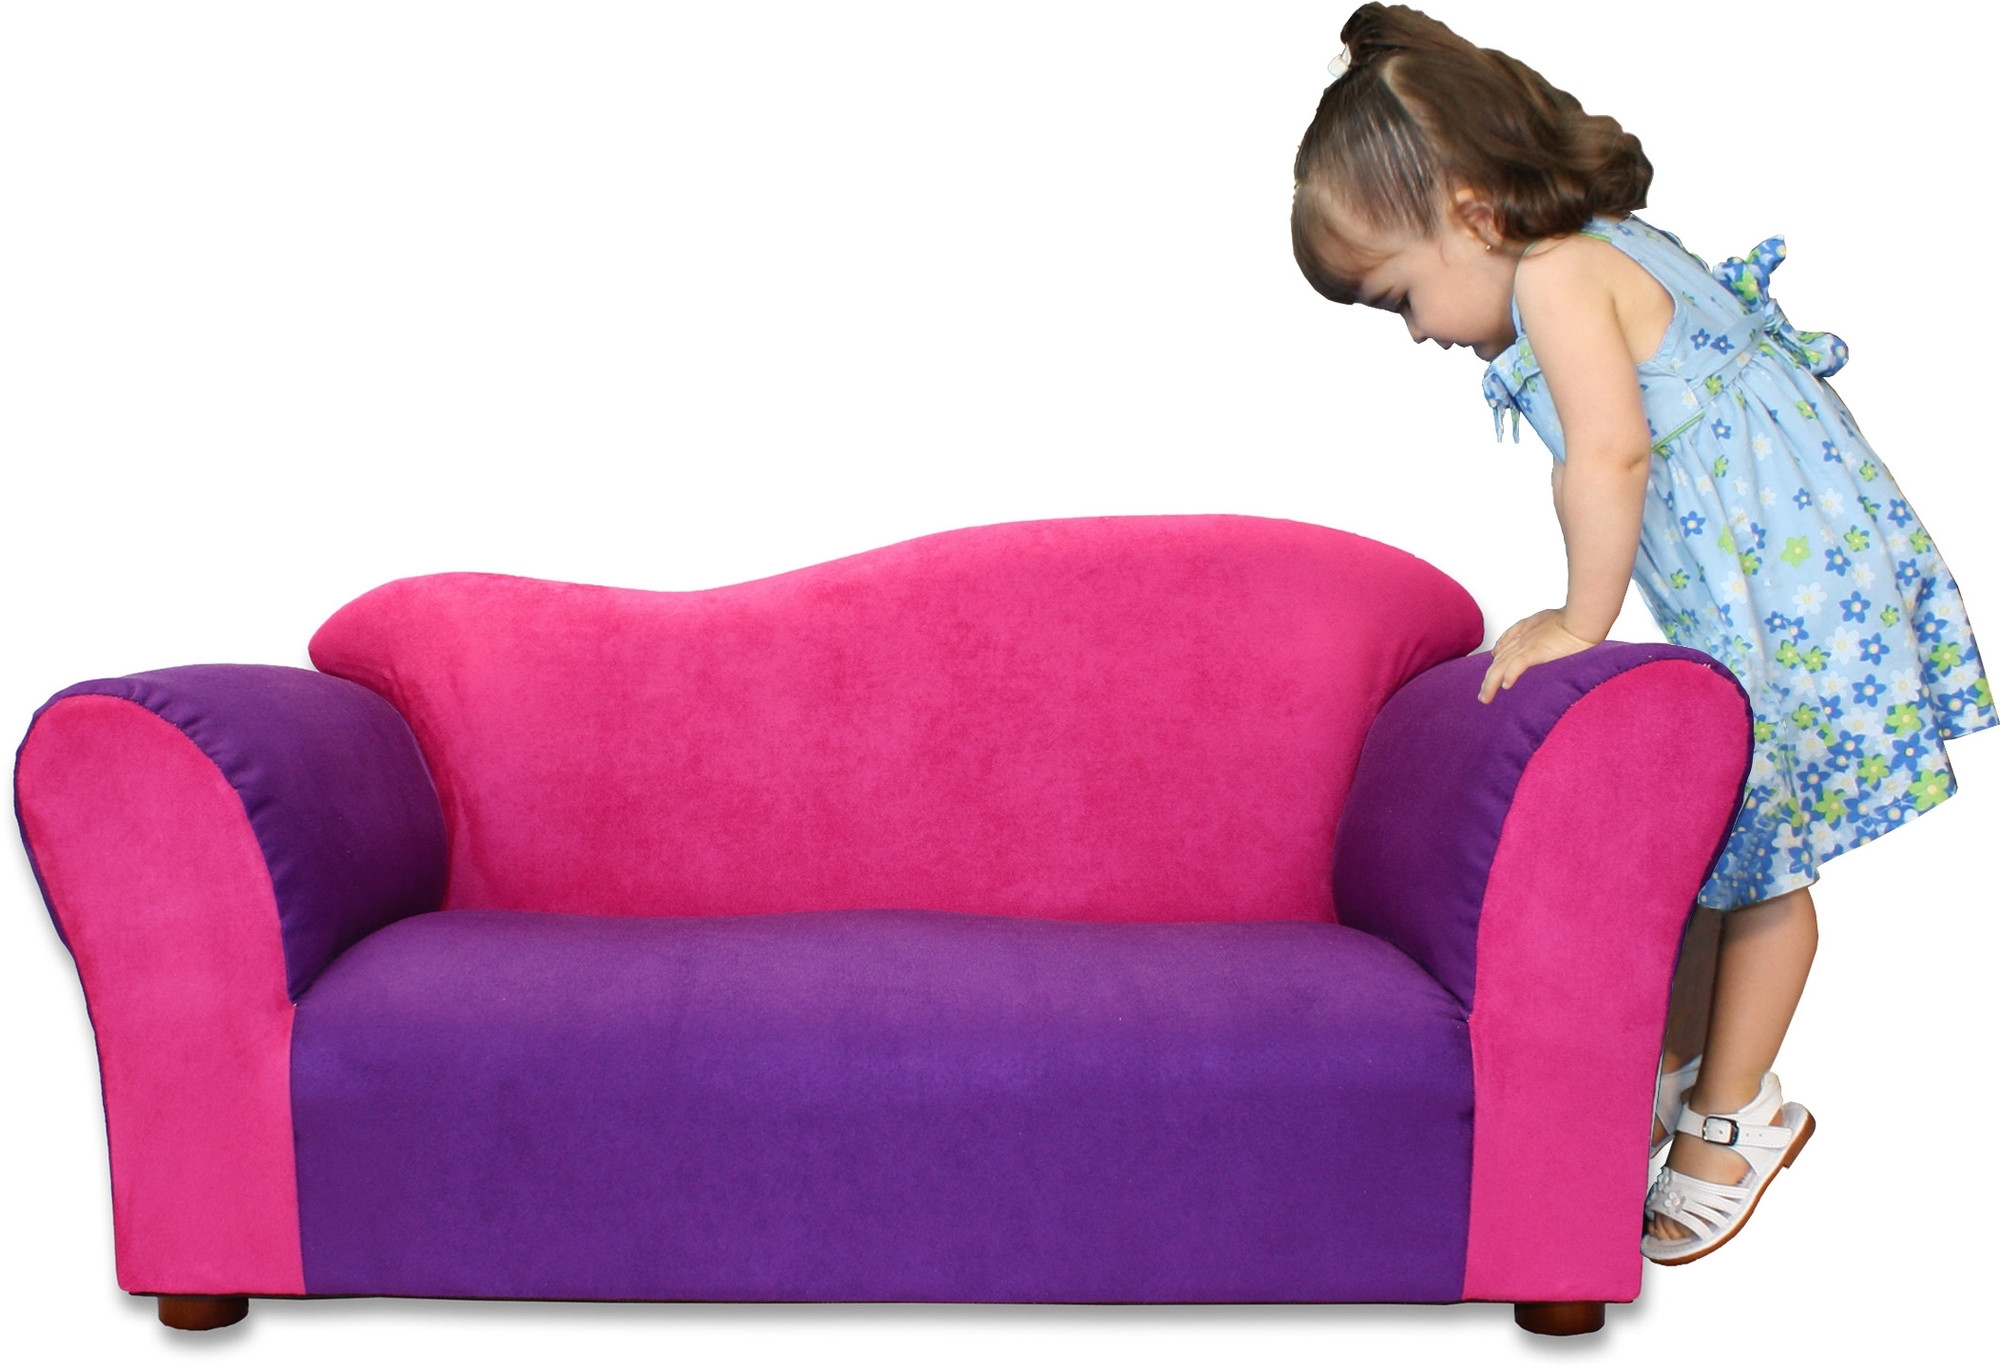 Fashionable Best Toddler Sofa Designs And Ideas – Goodworksfurniture Throughout Disney Sofa Chairs (View 9 of 20)